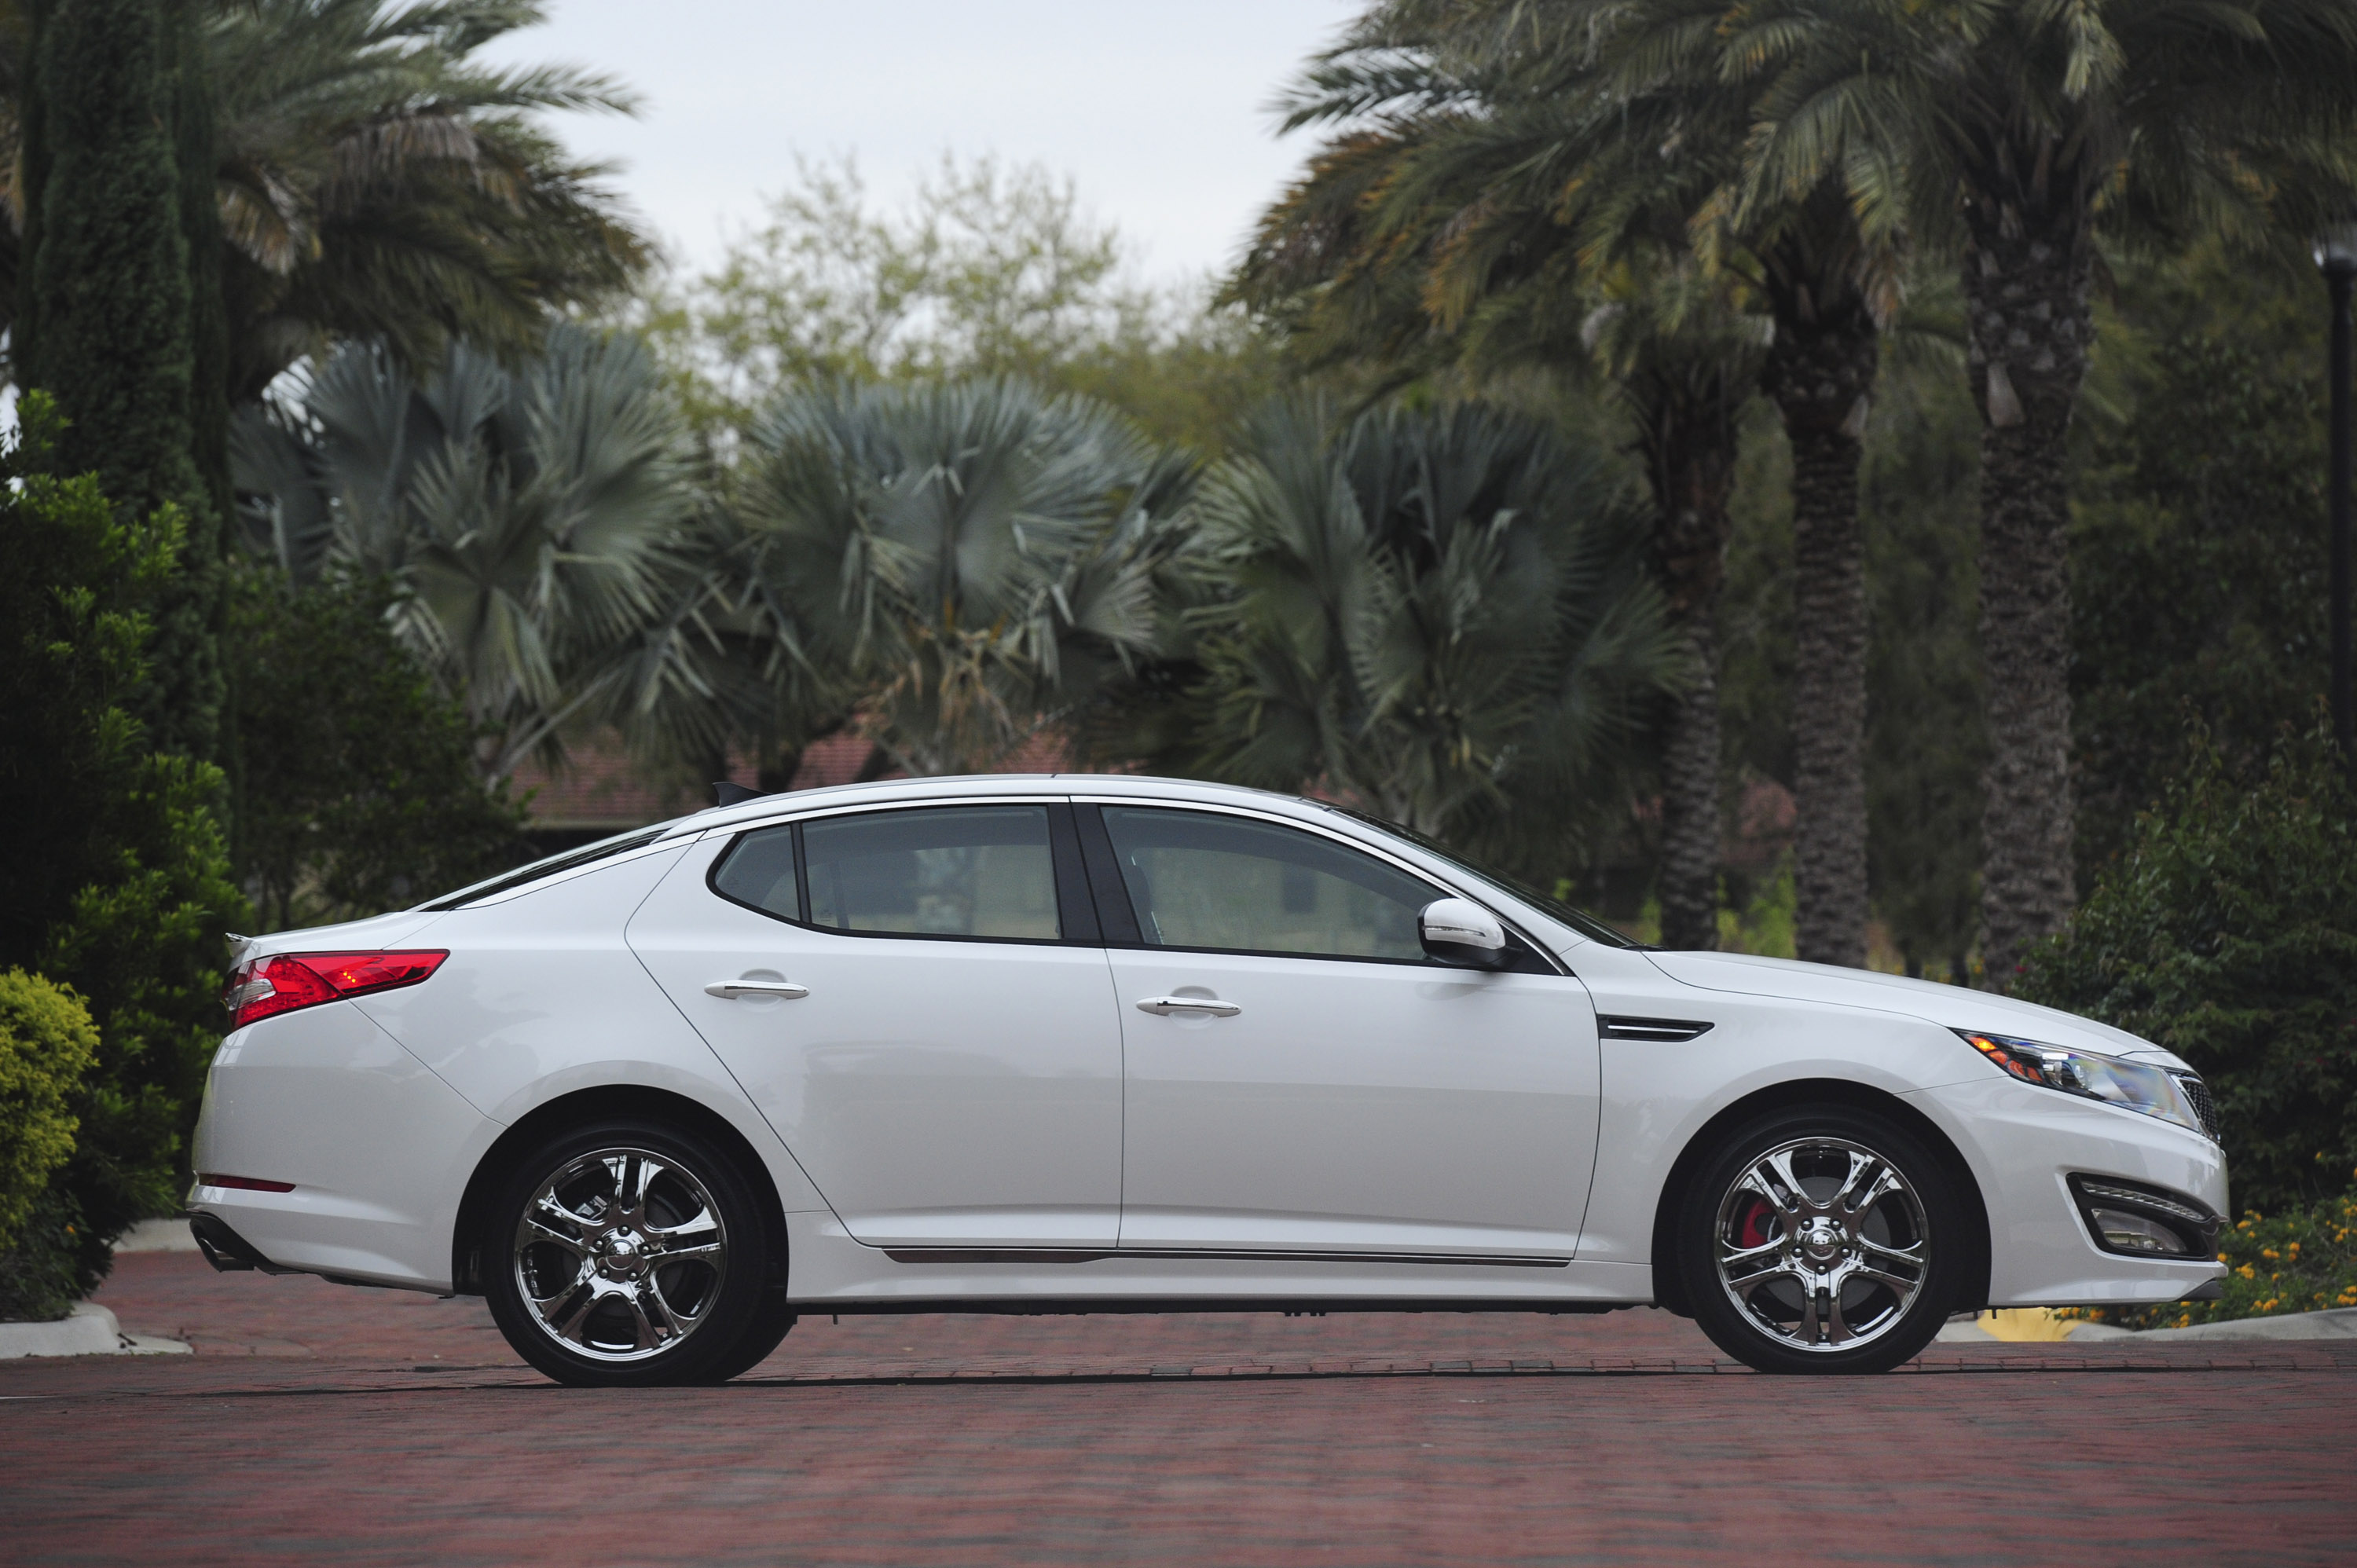 l review car reviews rapha driving sx road with optima kia test turbo created